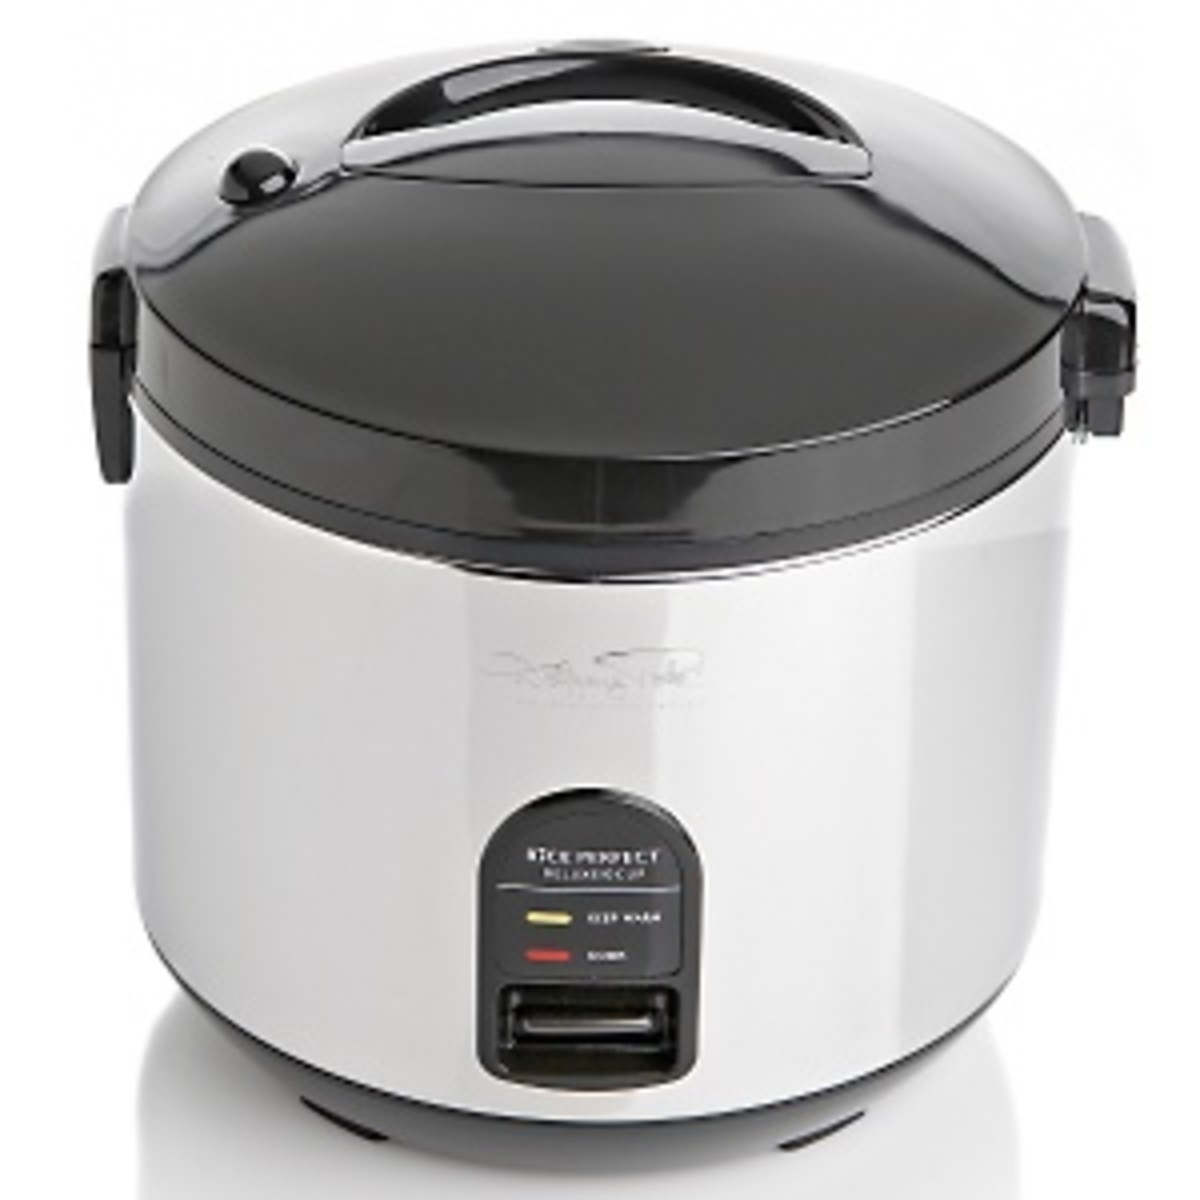 Wolfgang Puck 10 Cup Electric Rice Cooker